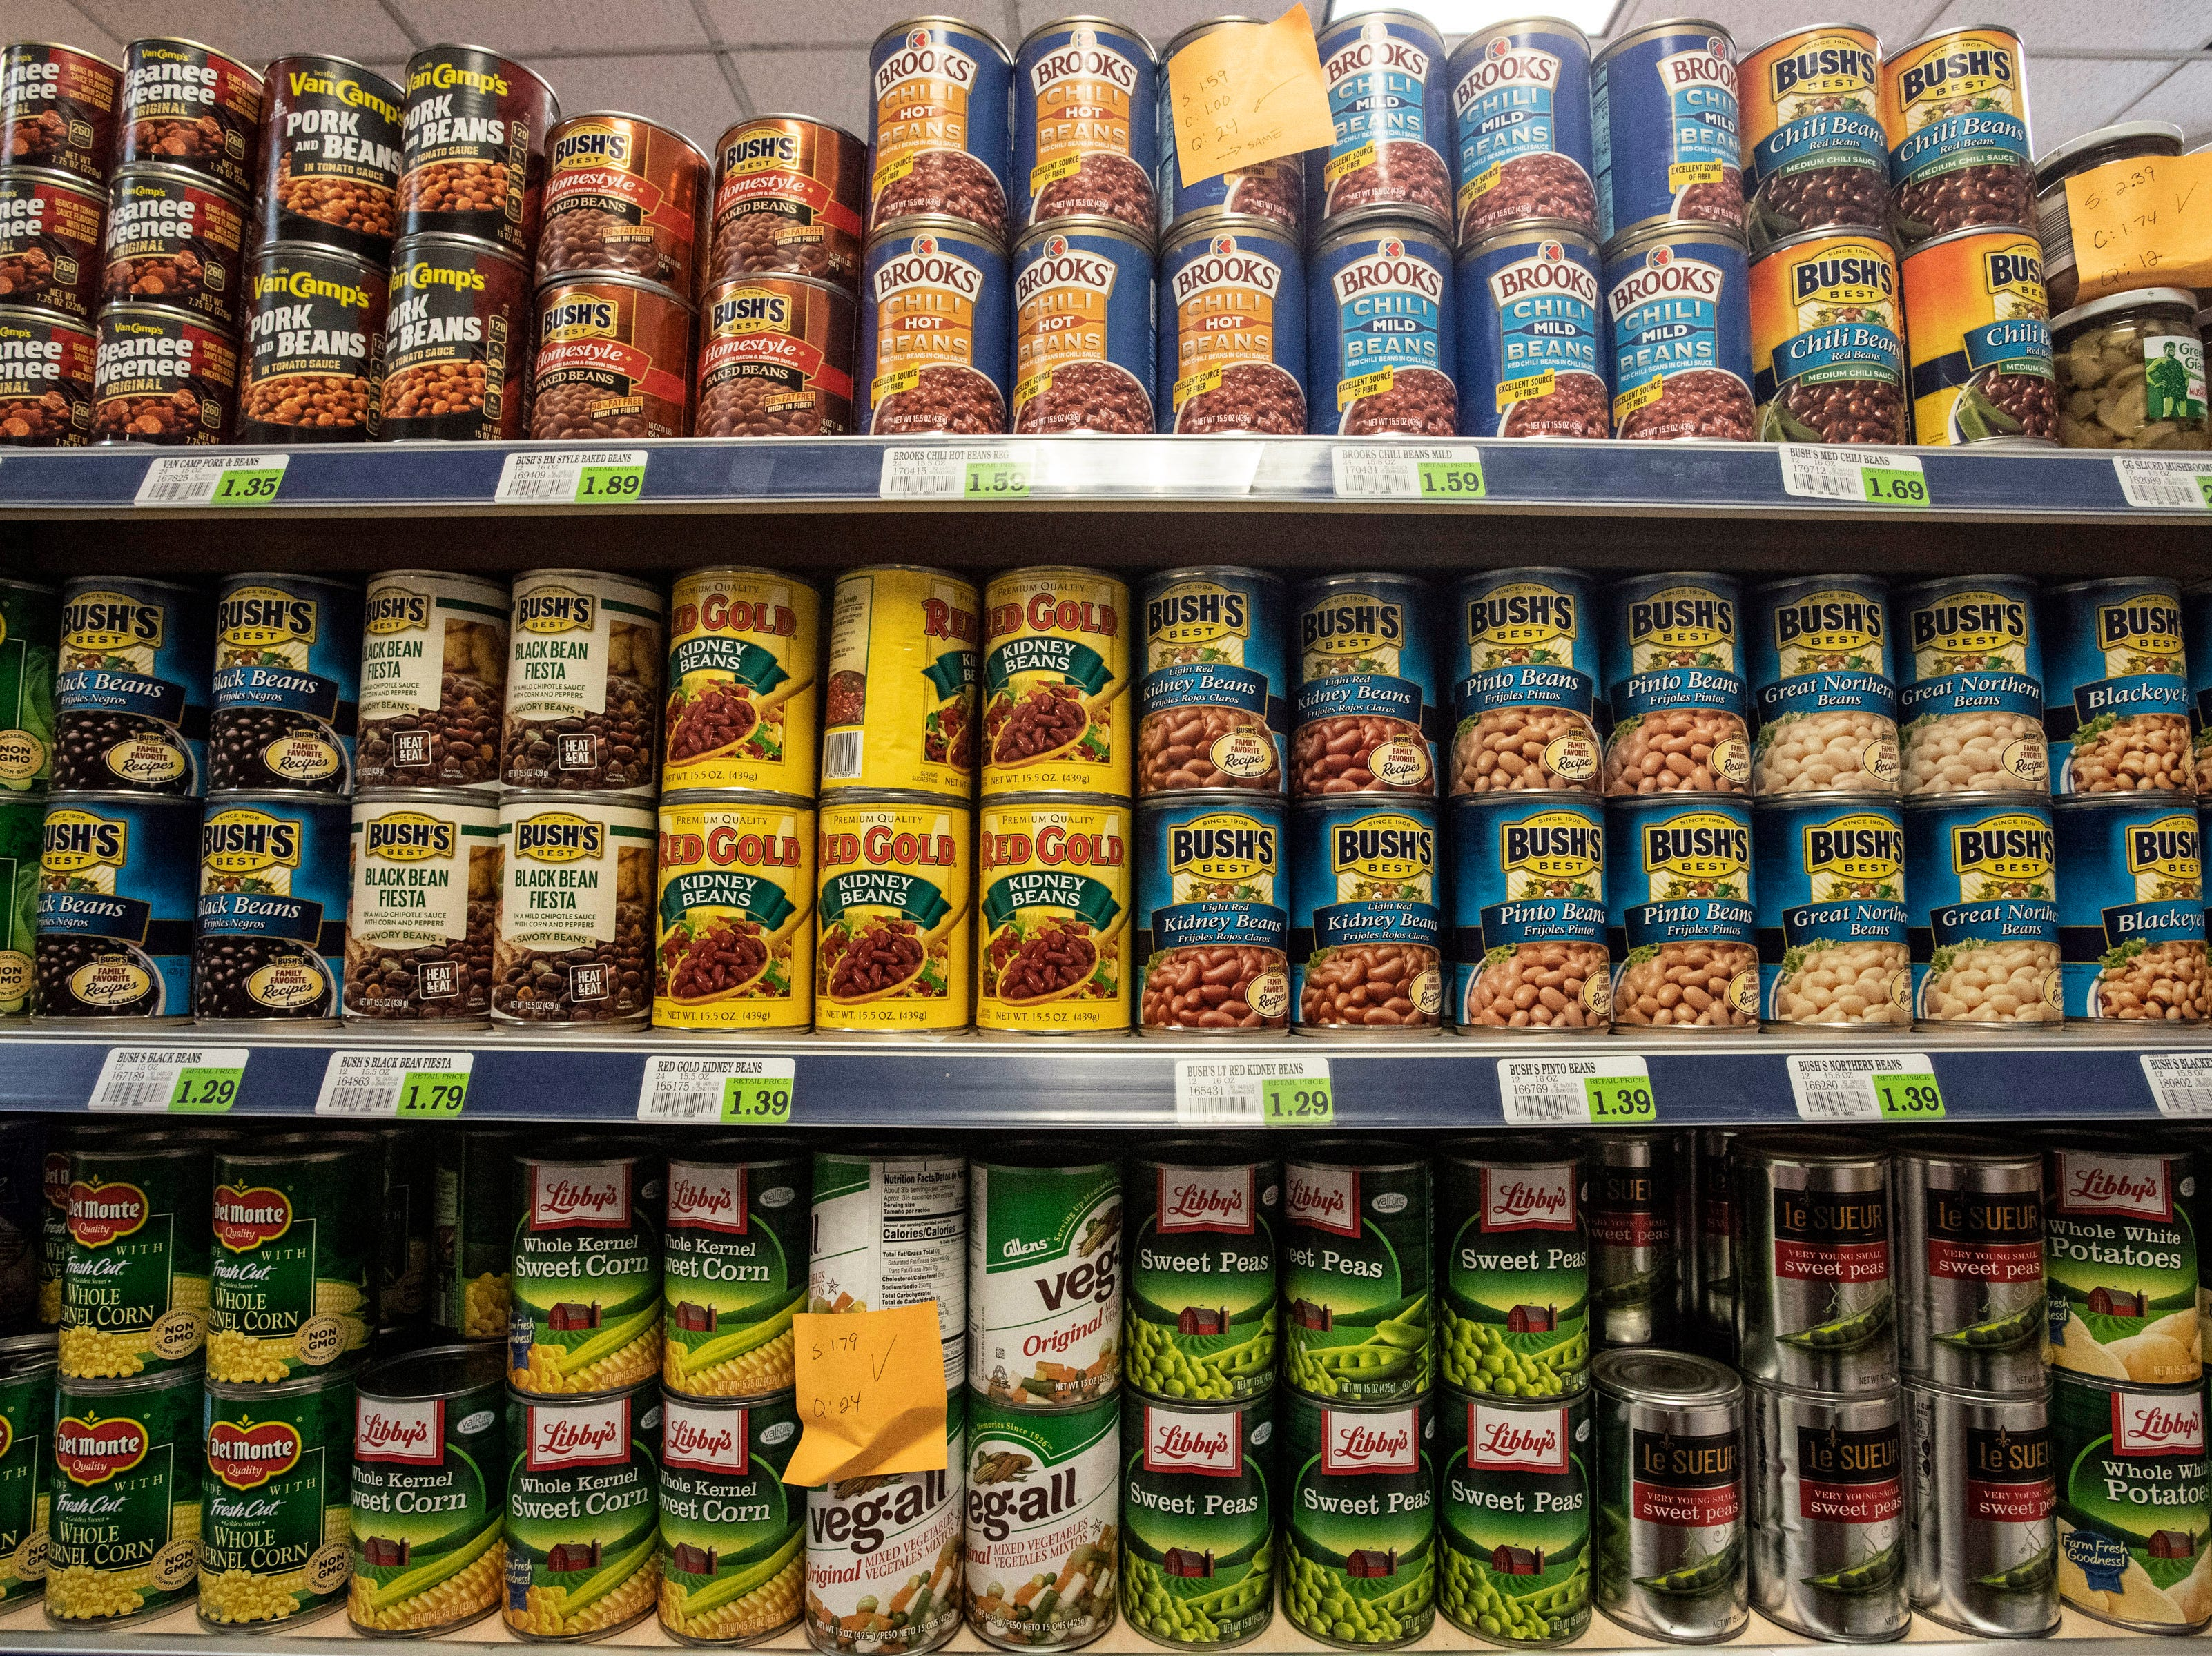 With a large selection of canned and dry goods, Superior Market & Deli will bring a New York-style bodega to Broadway for downtown visitors and workers alike. 5/10/19